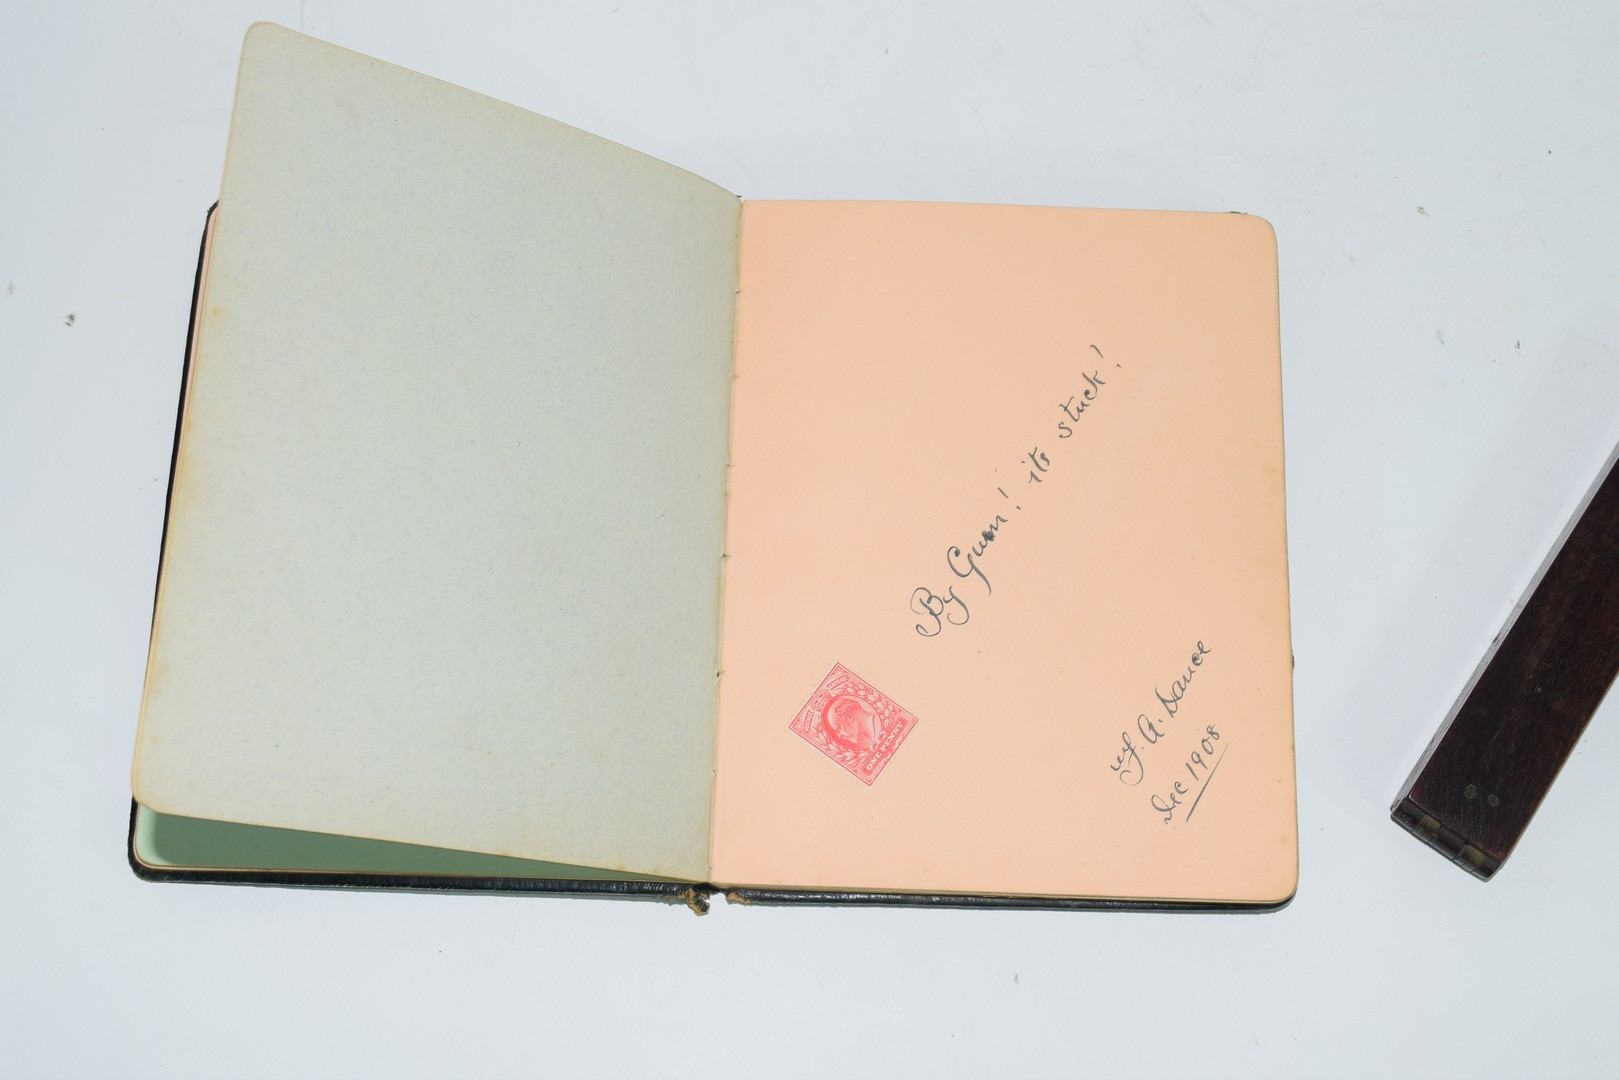 Early 20th century autograph book - Image 4 of 8